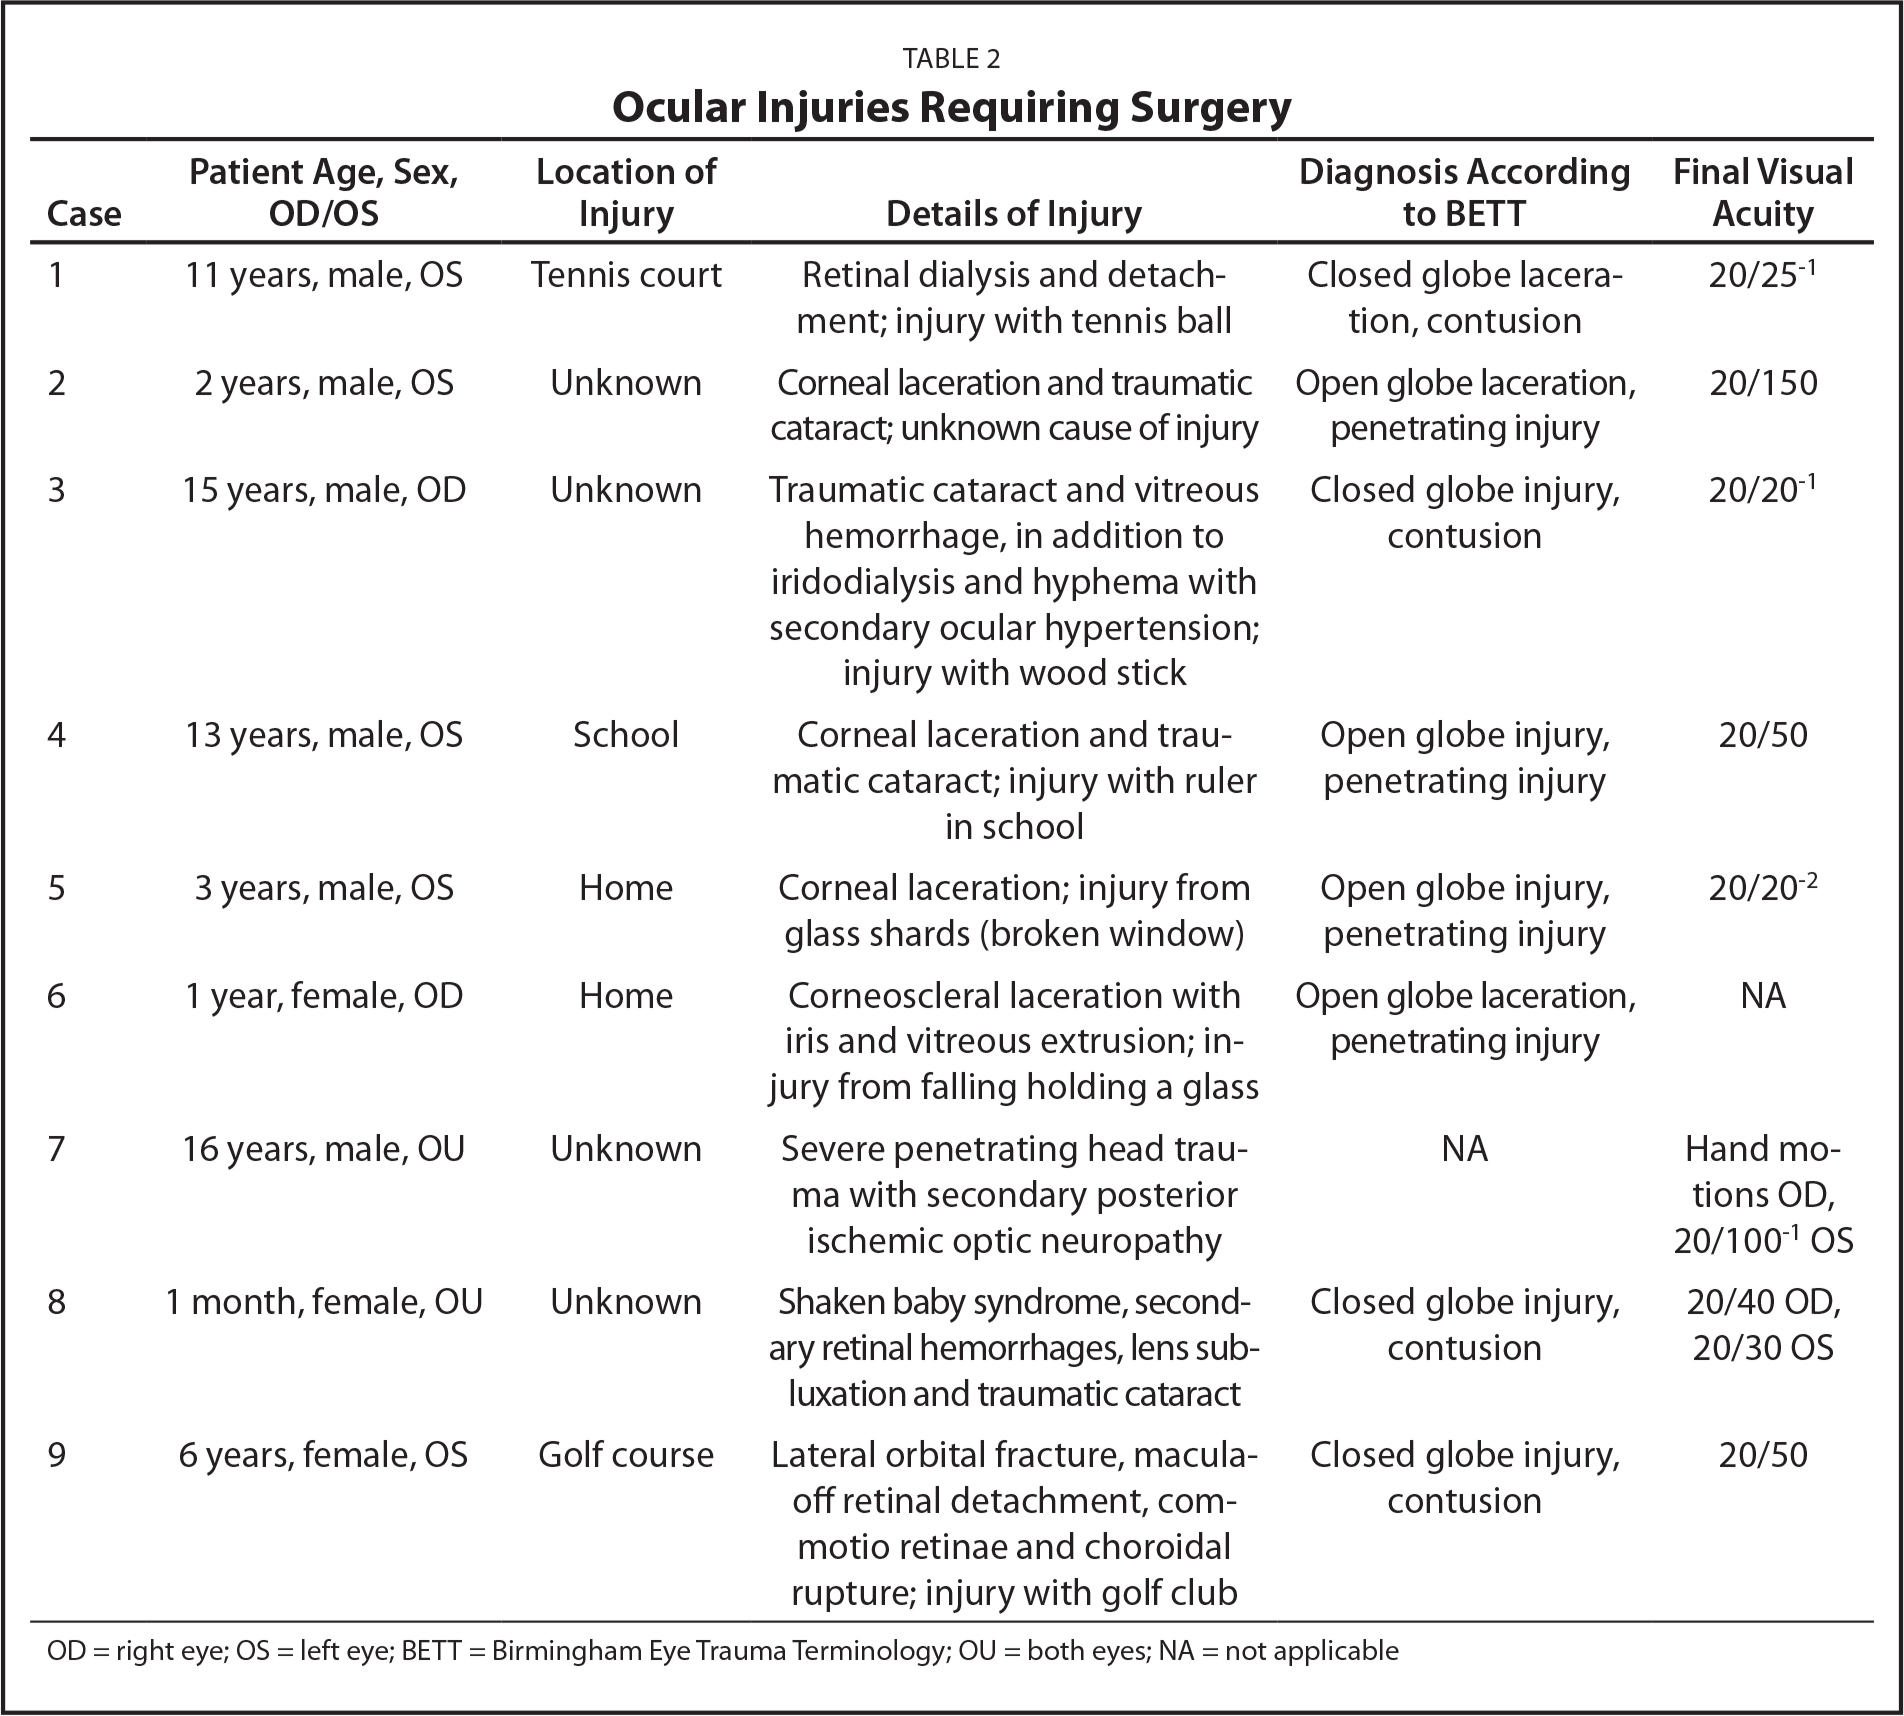 Ocular Injuries Requiring Surgery